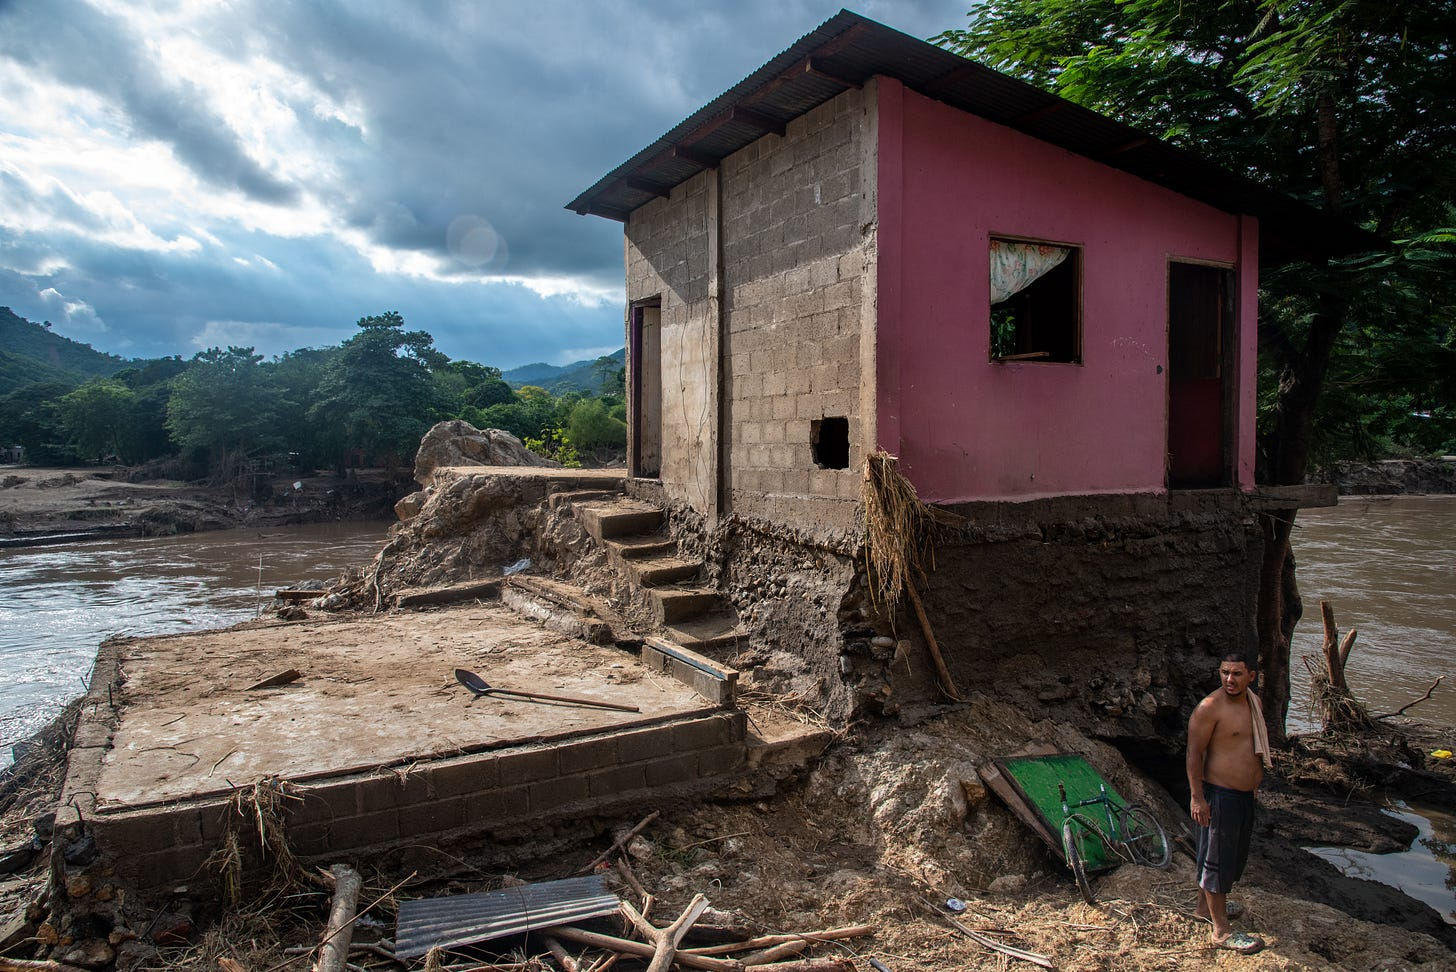 SAN PEDRO SULA, CORTES, HONDURAS - 2020/11/07: A man in front of his home that was destroyed when the Chemelecon River flooded in San Pedro Sula